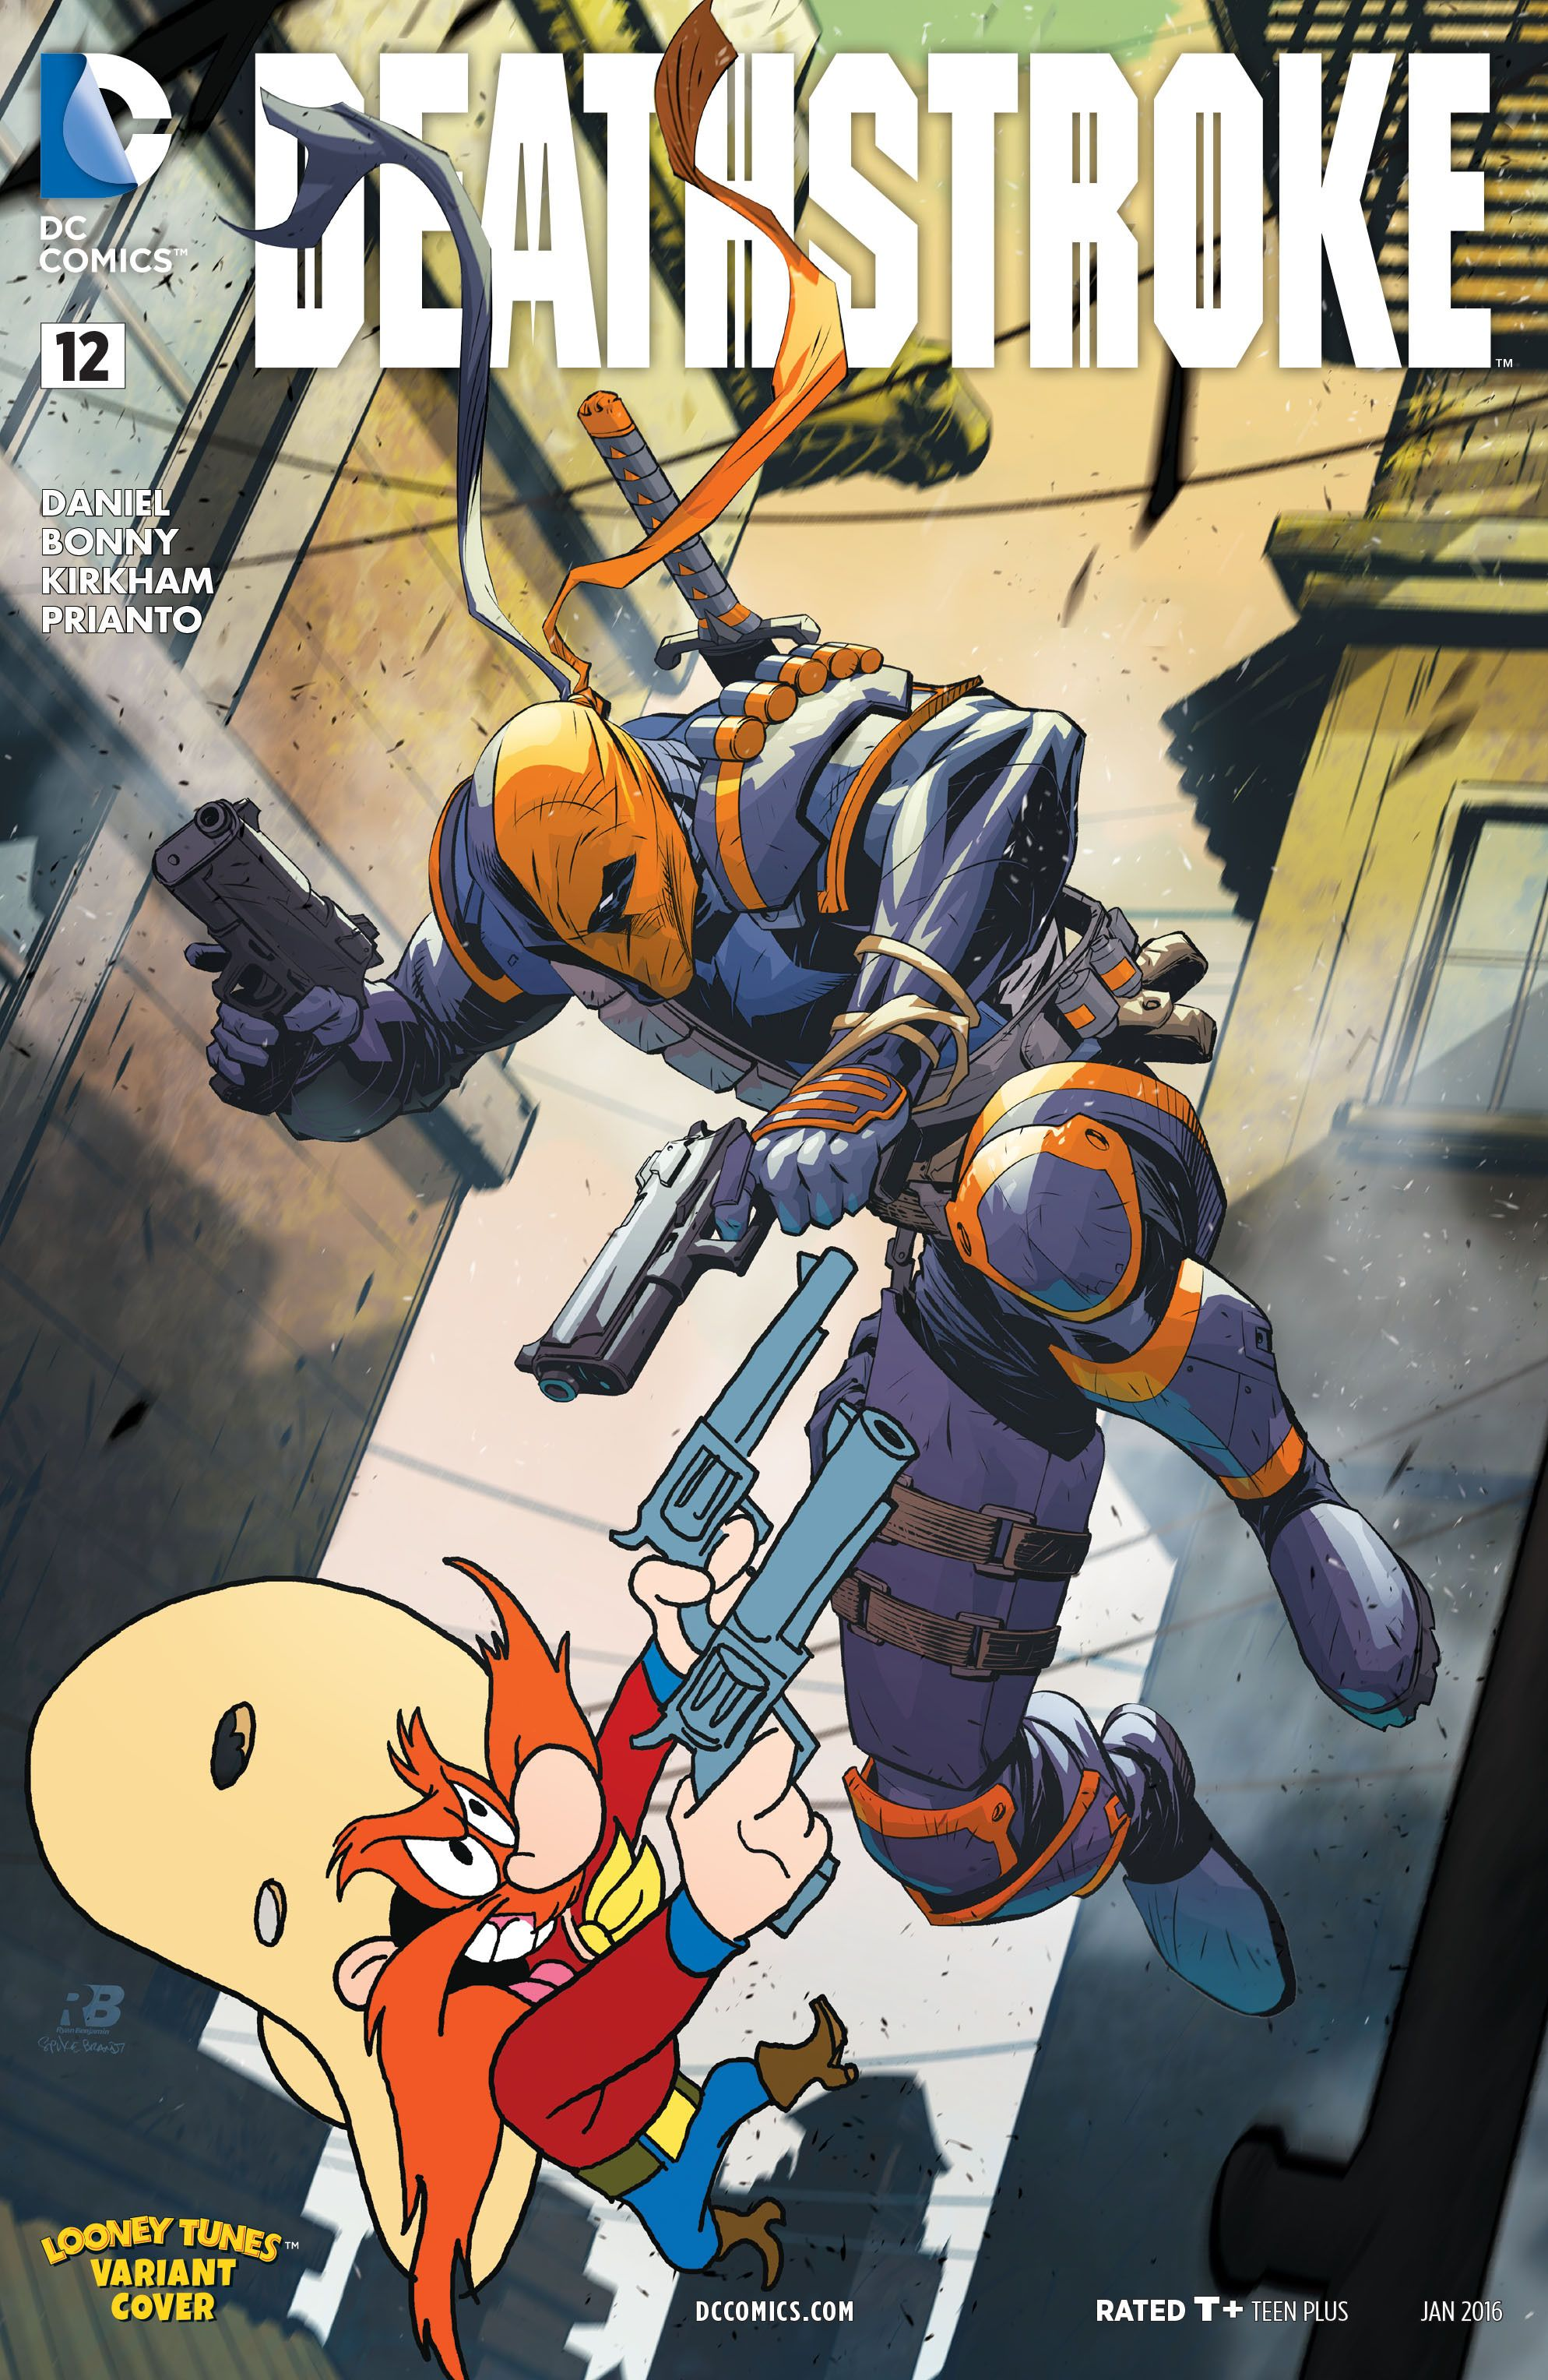 Deathstroke 2014 Issue 12 By Ryan Benjamin